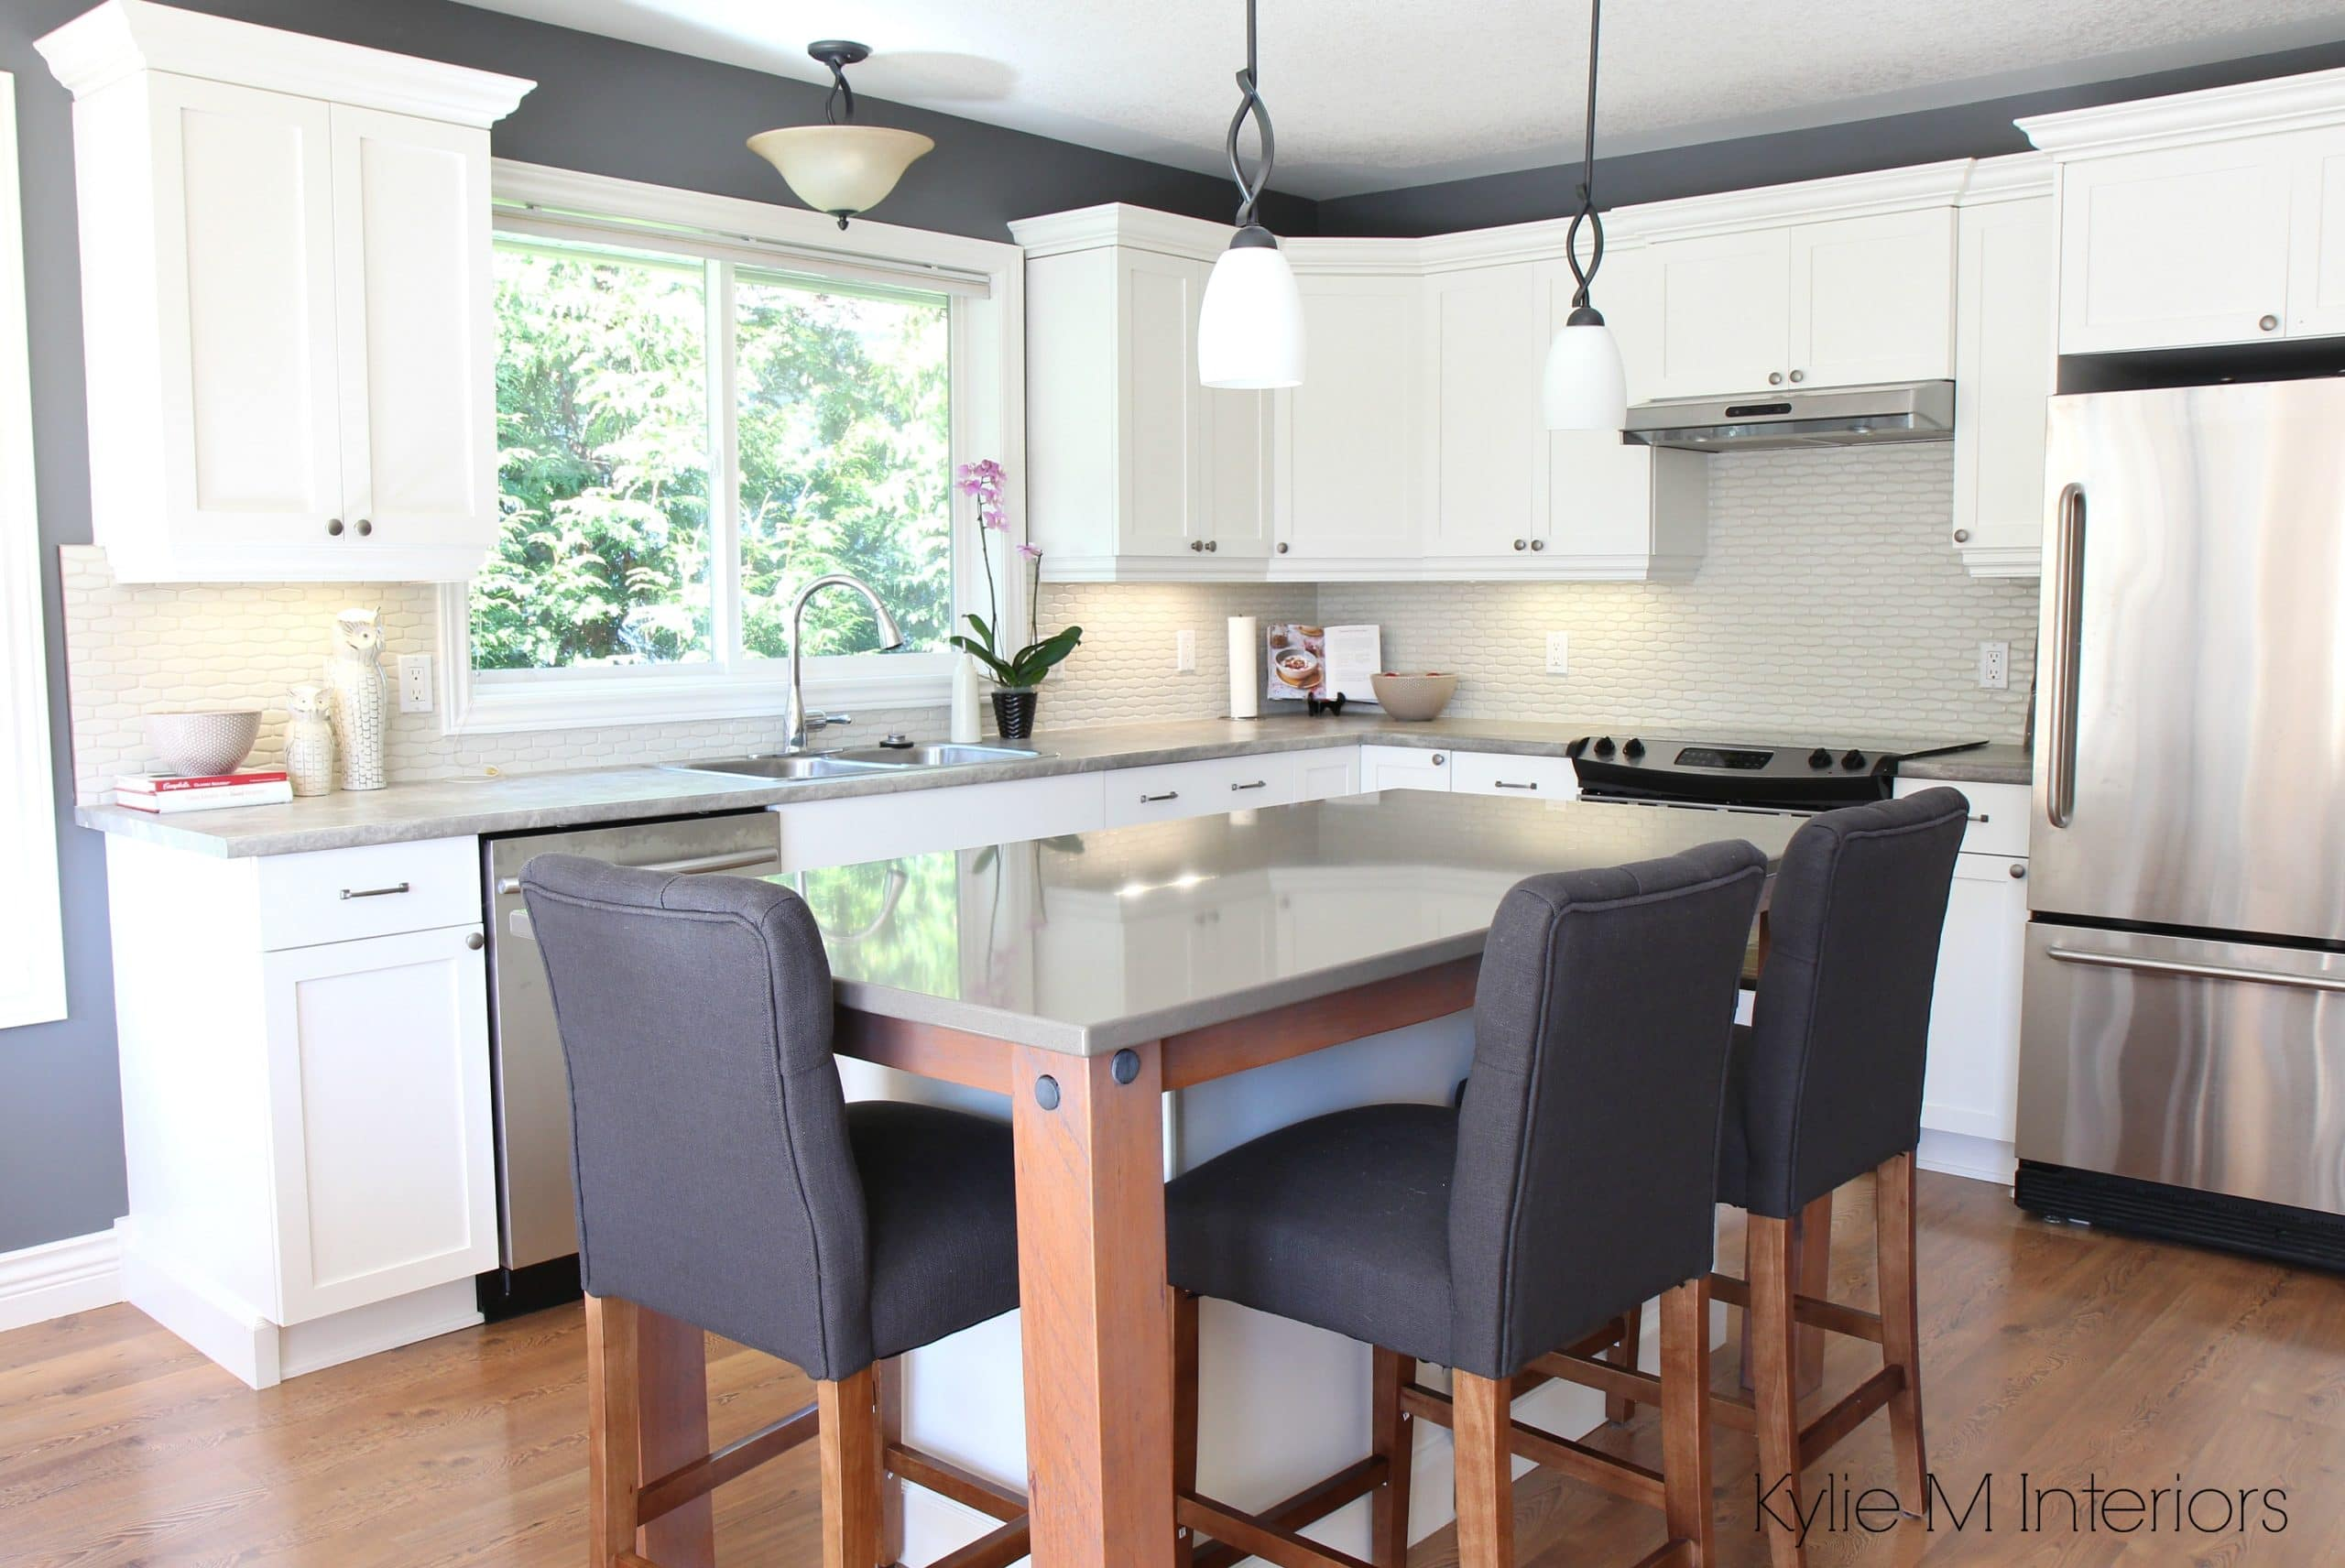 Maple Kitchen Remodel Cabinets Cloud White Gray Quartz Hexagon Backsplash Formica Soapstone And Rustic Wood Island Supports With Stainless Steel